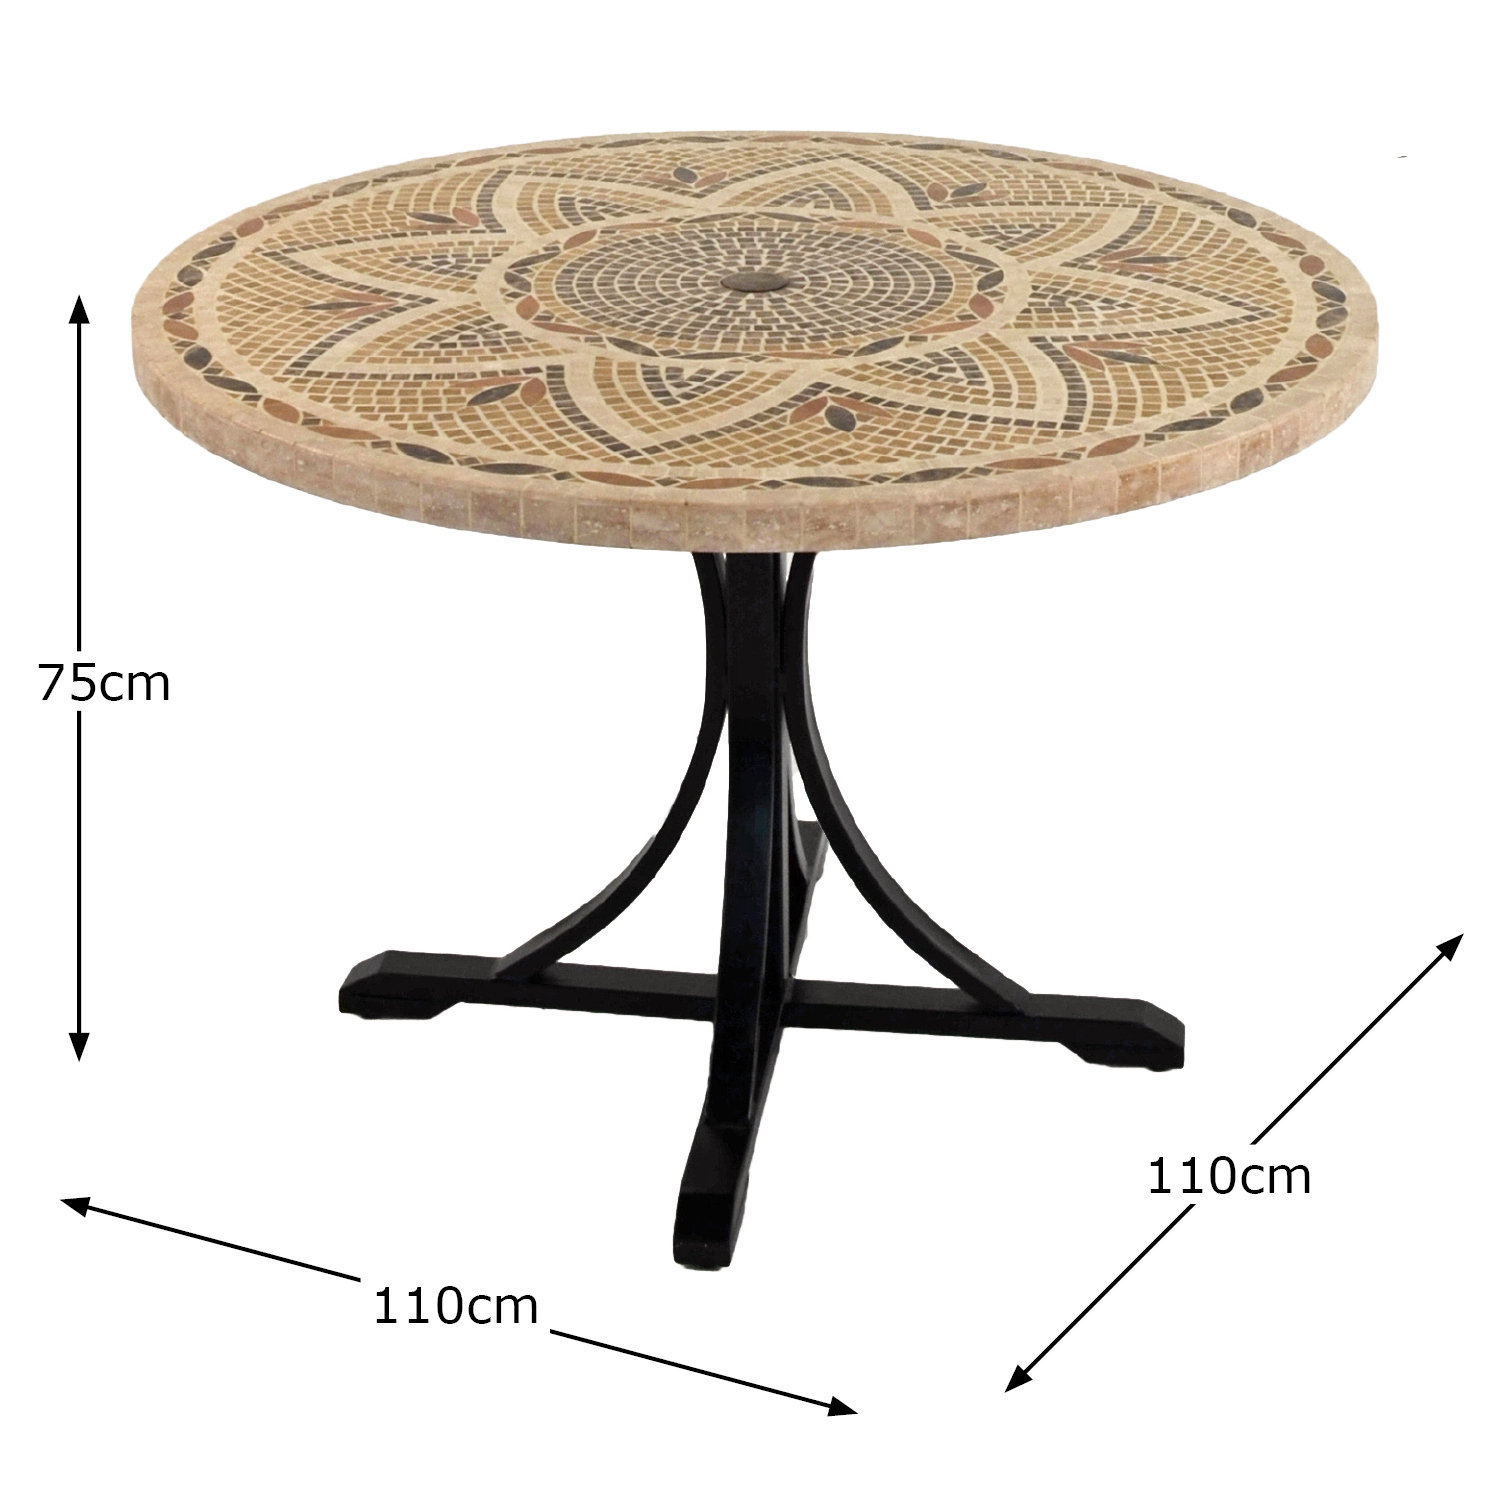 MONTPELLIER 110CM DINING TABLE DIMENSION MS1